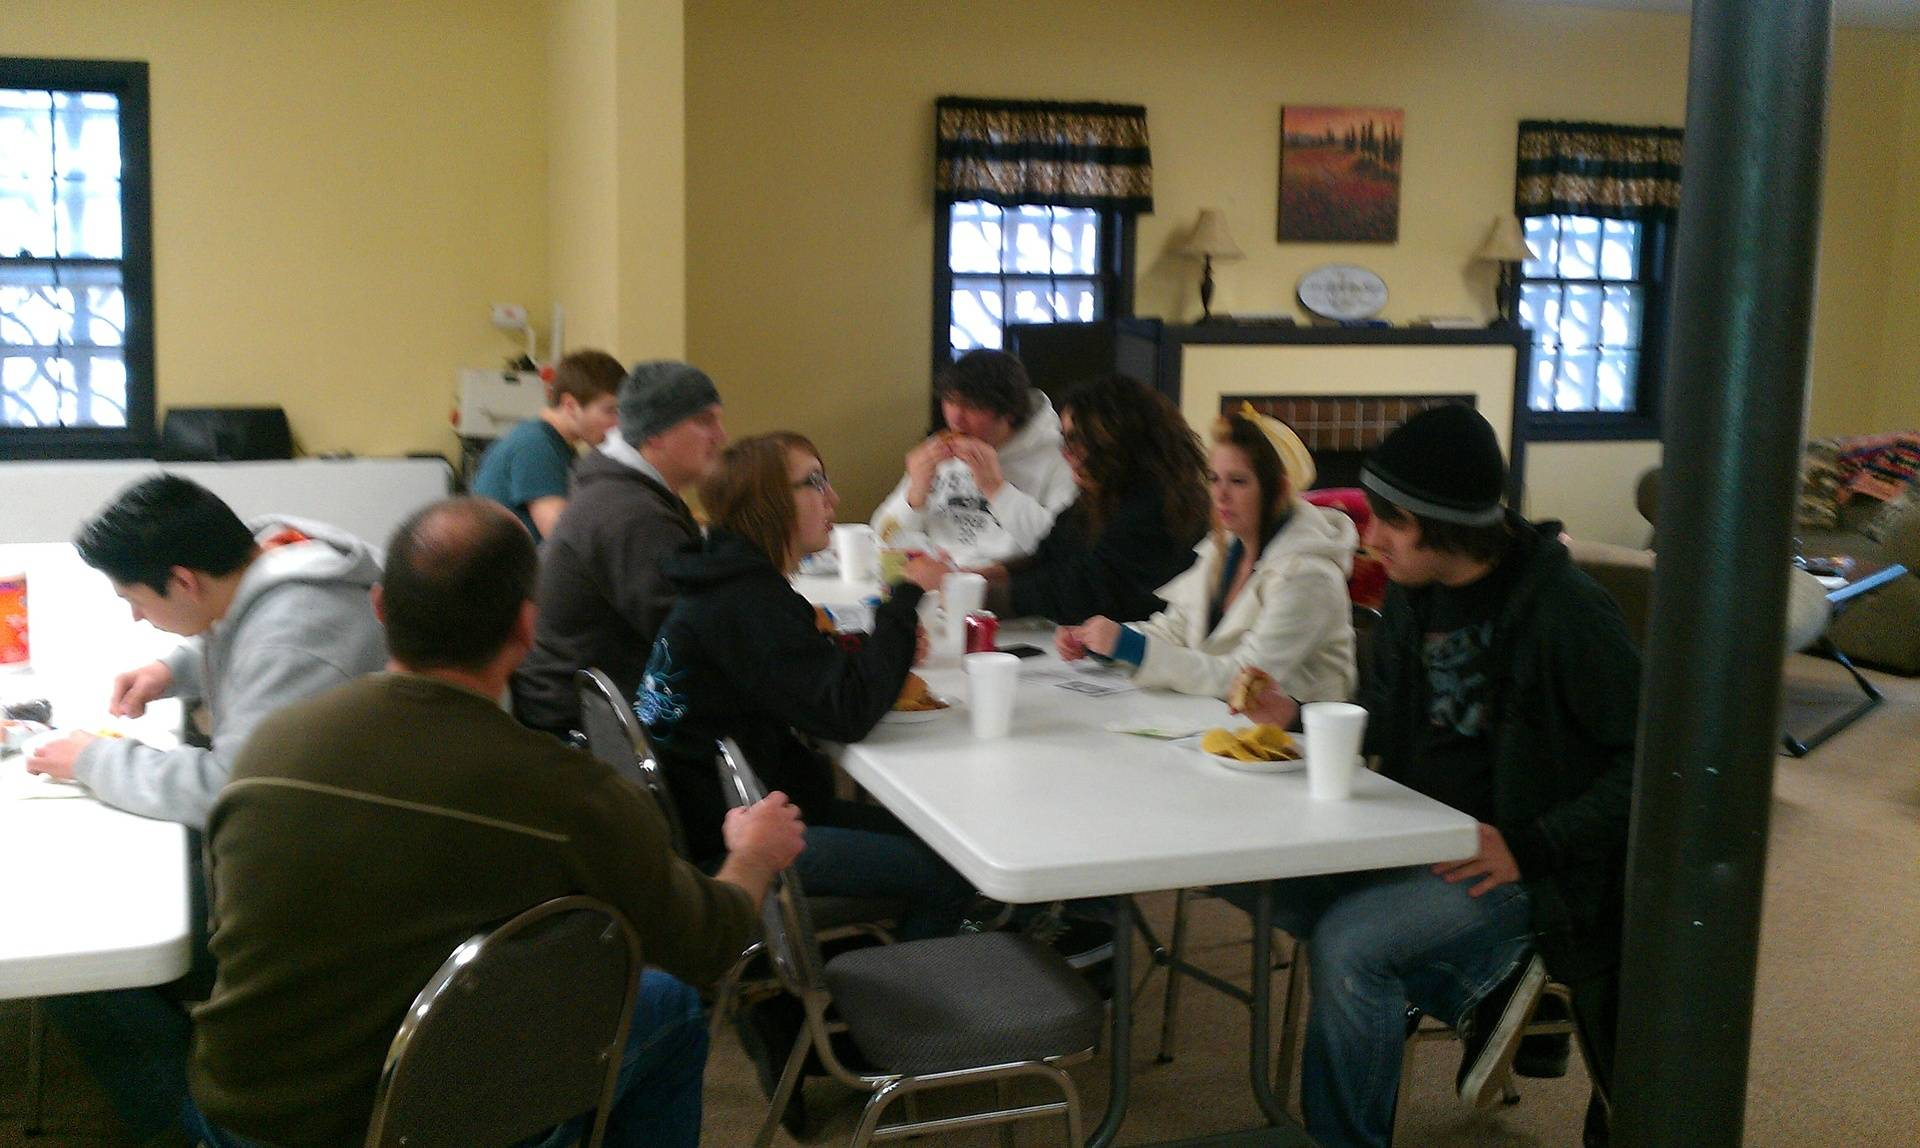 BCM Noonday First Group